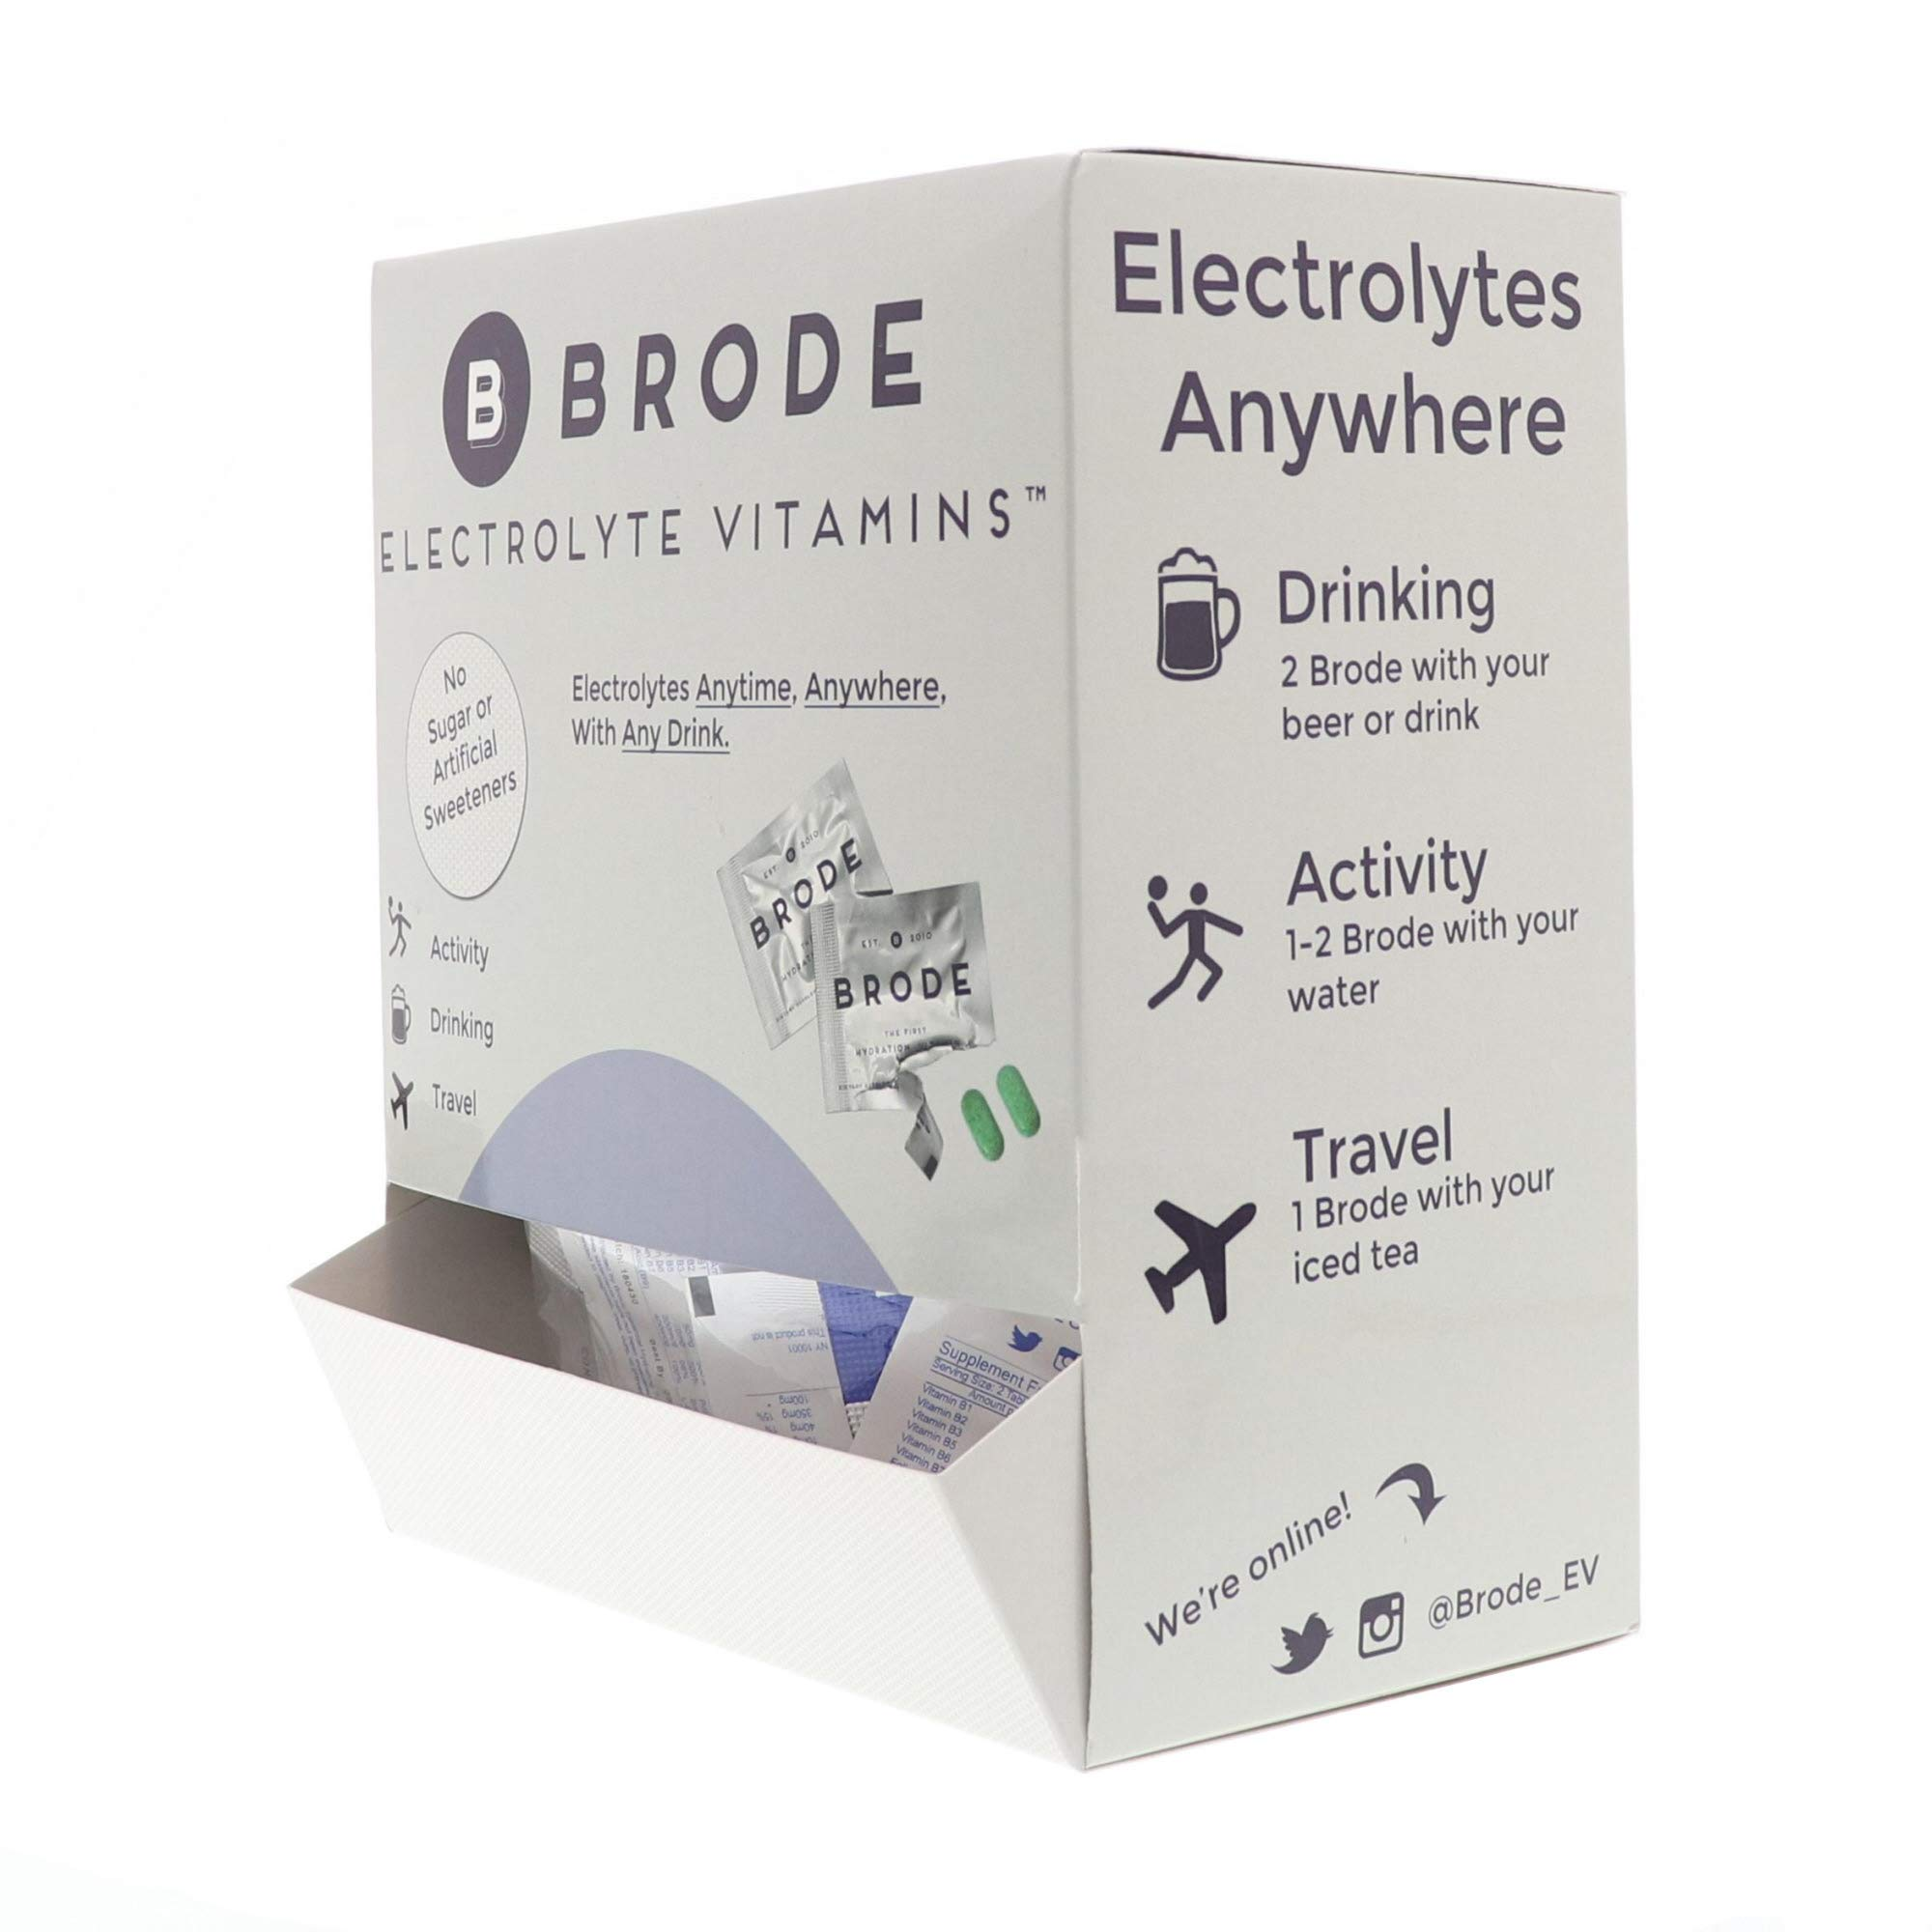 Brode Electrolyte Vitamin - Portable Zero-Sugar Electrolyte Tablets - for Sports, Hangovers, Jet Lag, 5 Essential Electrolytes + 9 Vitamins 100-Pack by Brode (Image #2)